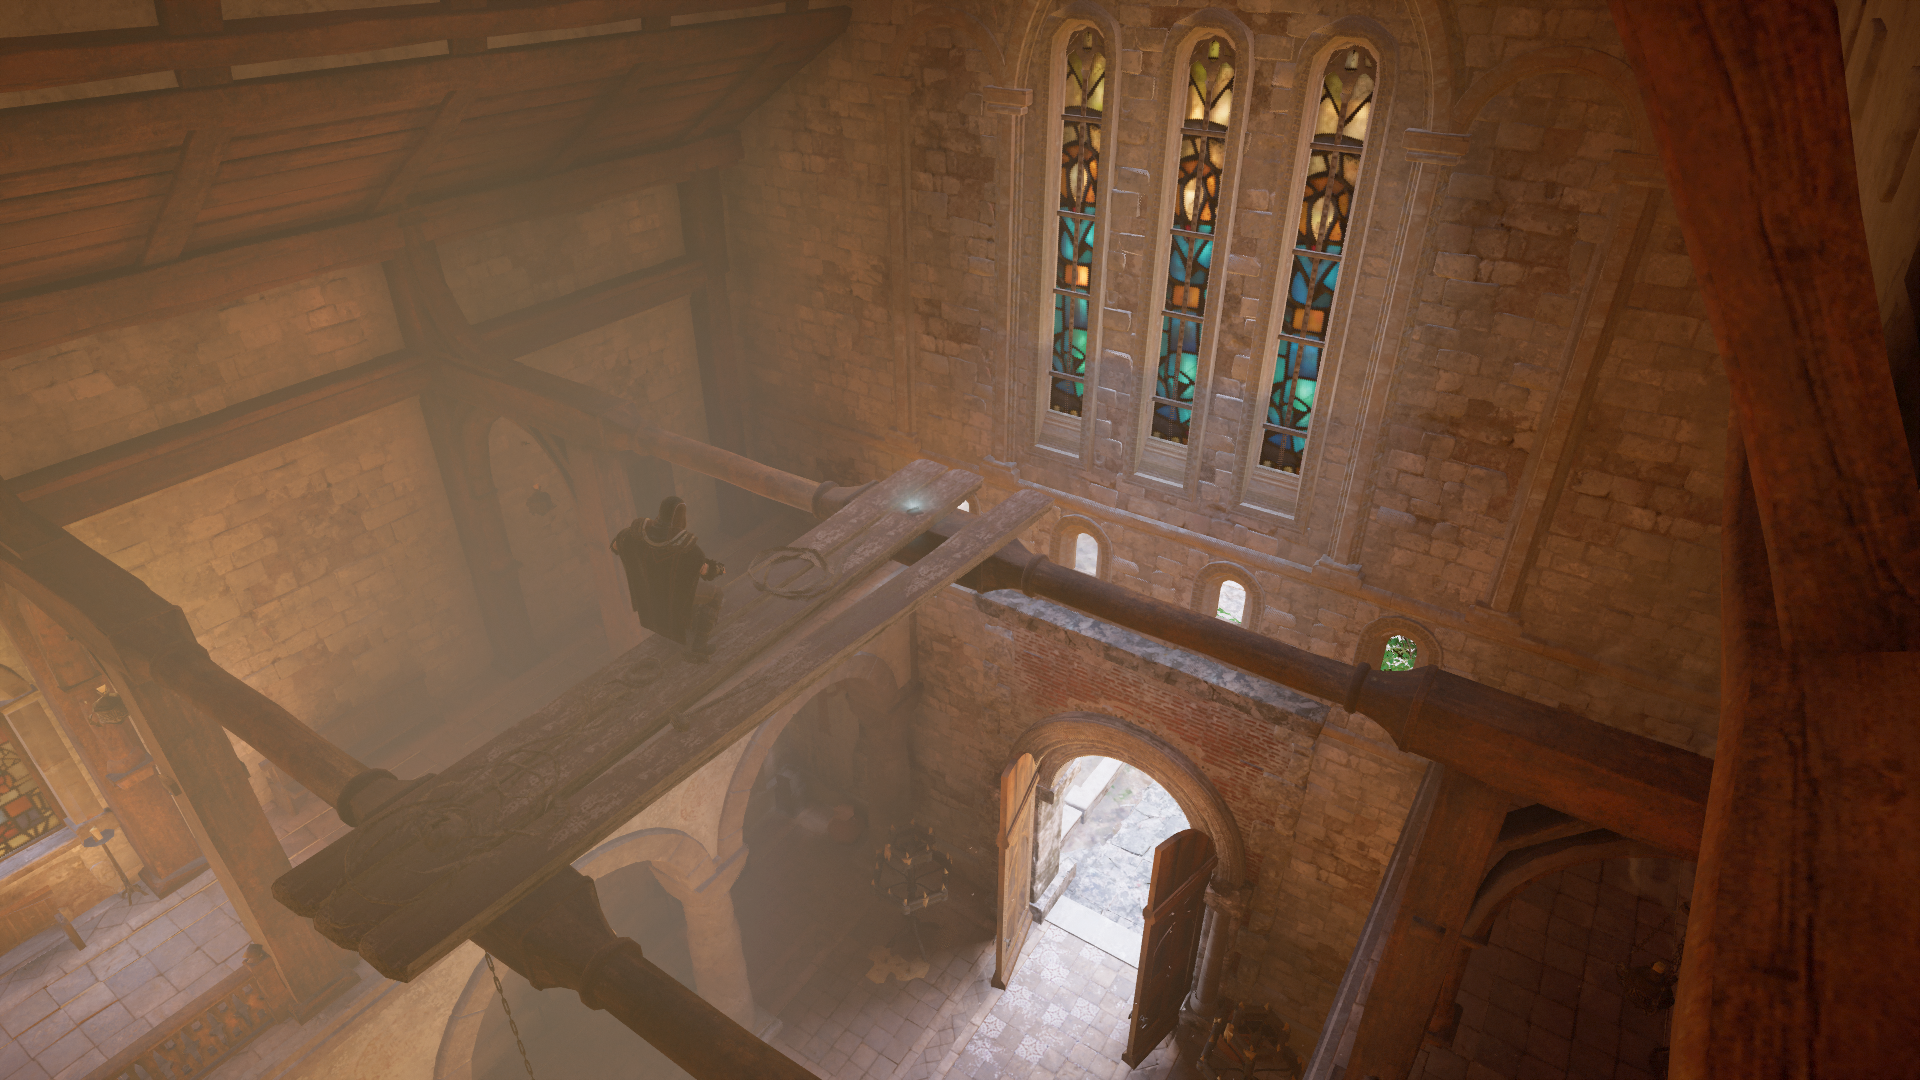 Assassin's Creed Valhalla guide: All Wincestre Wealth, Mysteries, and Artifacts